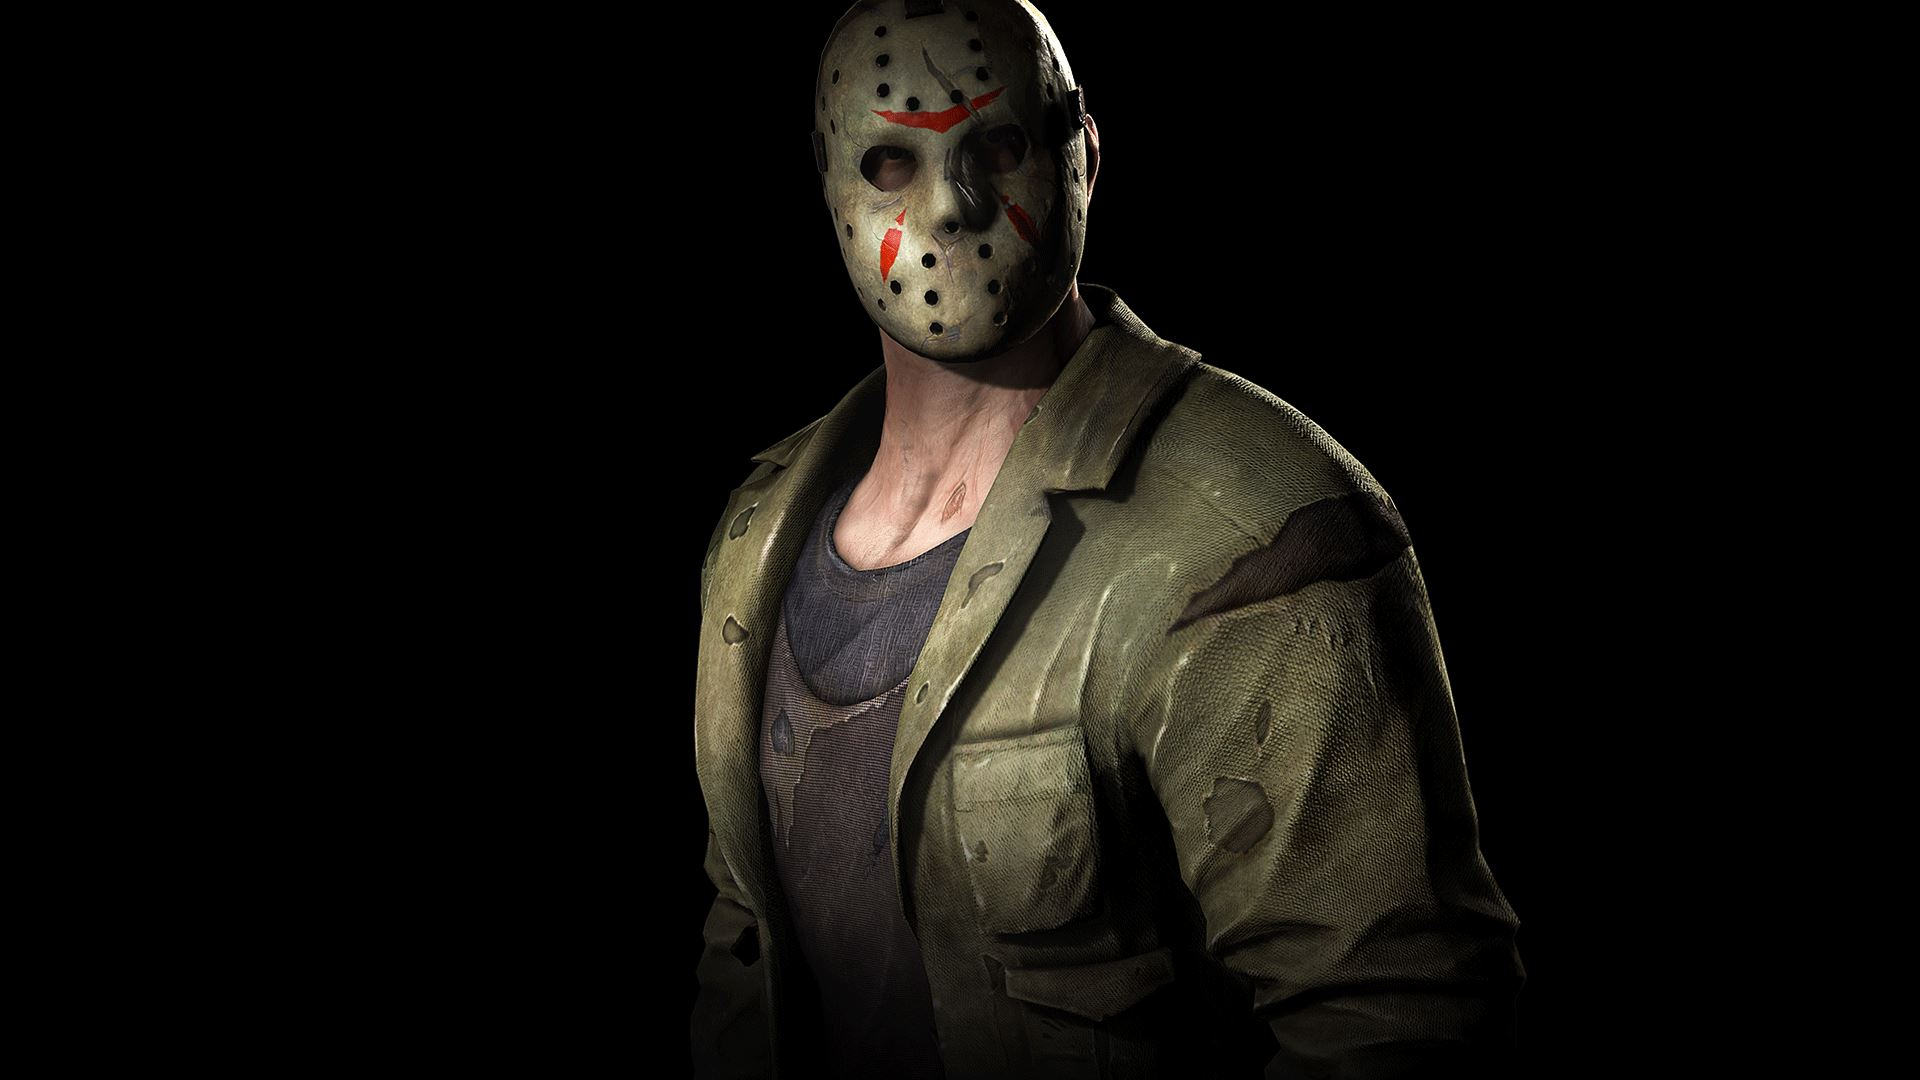 The iconic Jason Voorhes